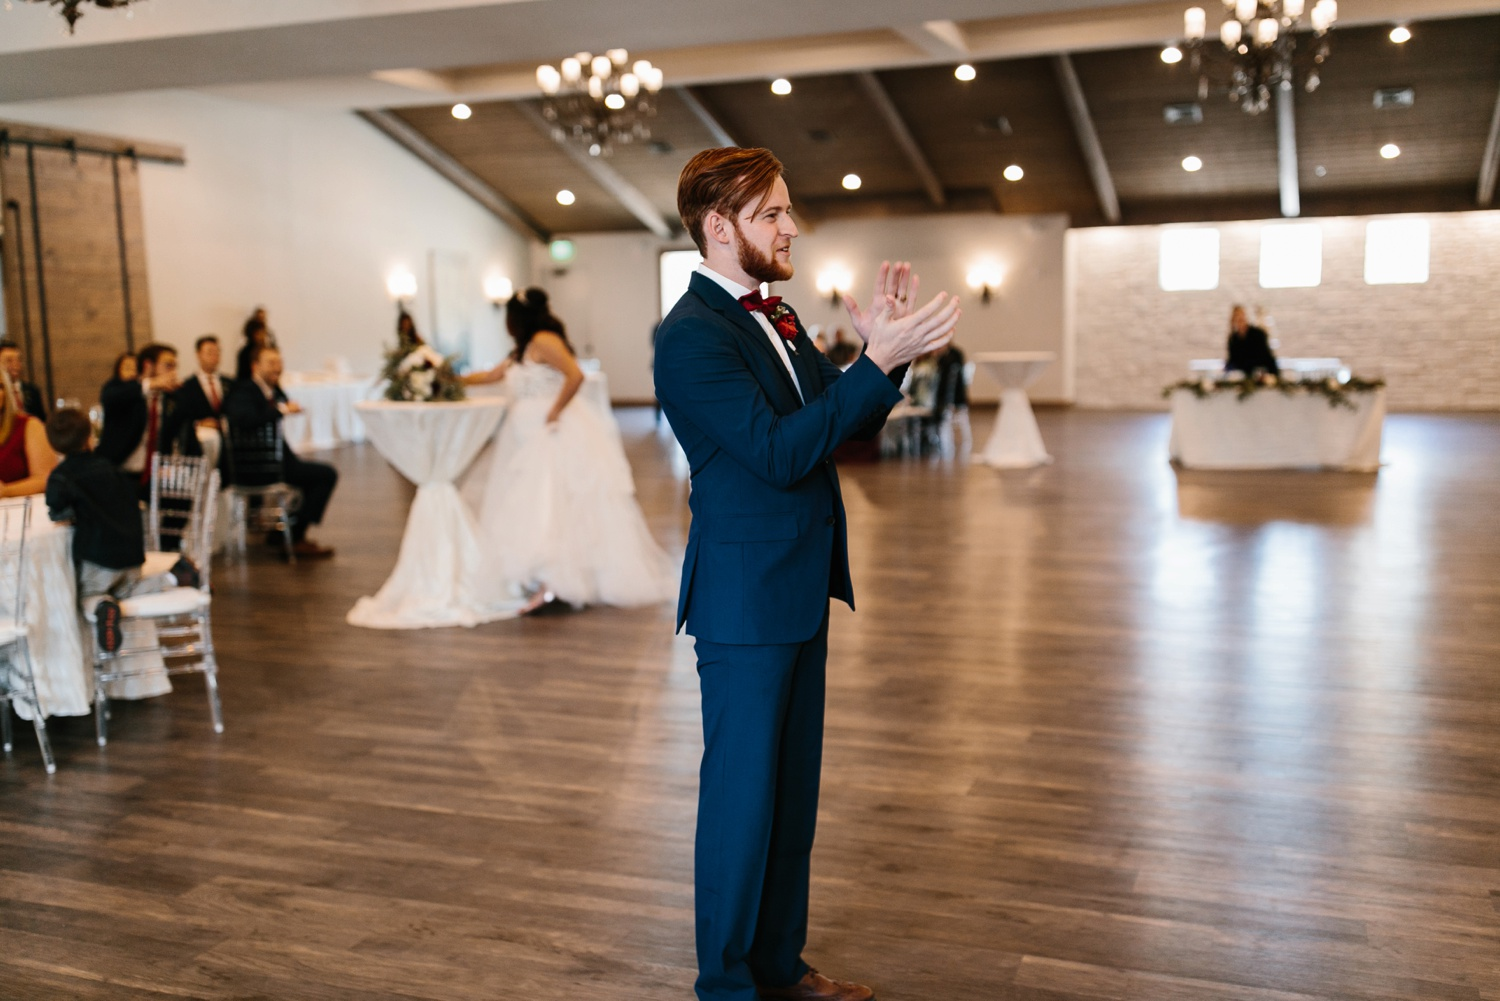 Grant + Lysette | a vibrant, deep burgundy and navy, and mixed metals wedding at Hidden Pines Chapel by North Texas Wedding Photographer Rachel Meagan Photography 140